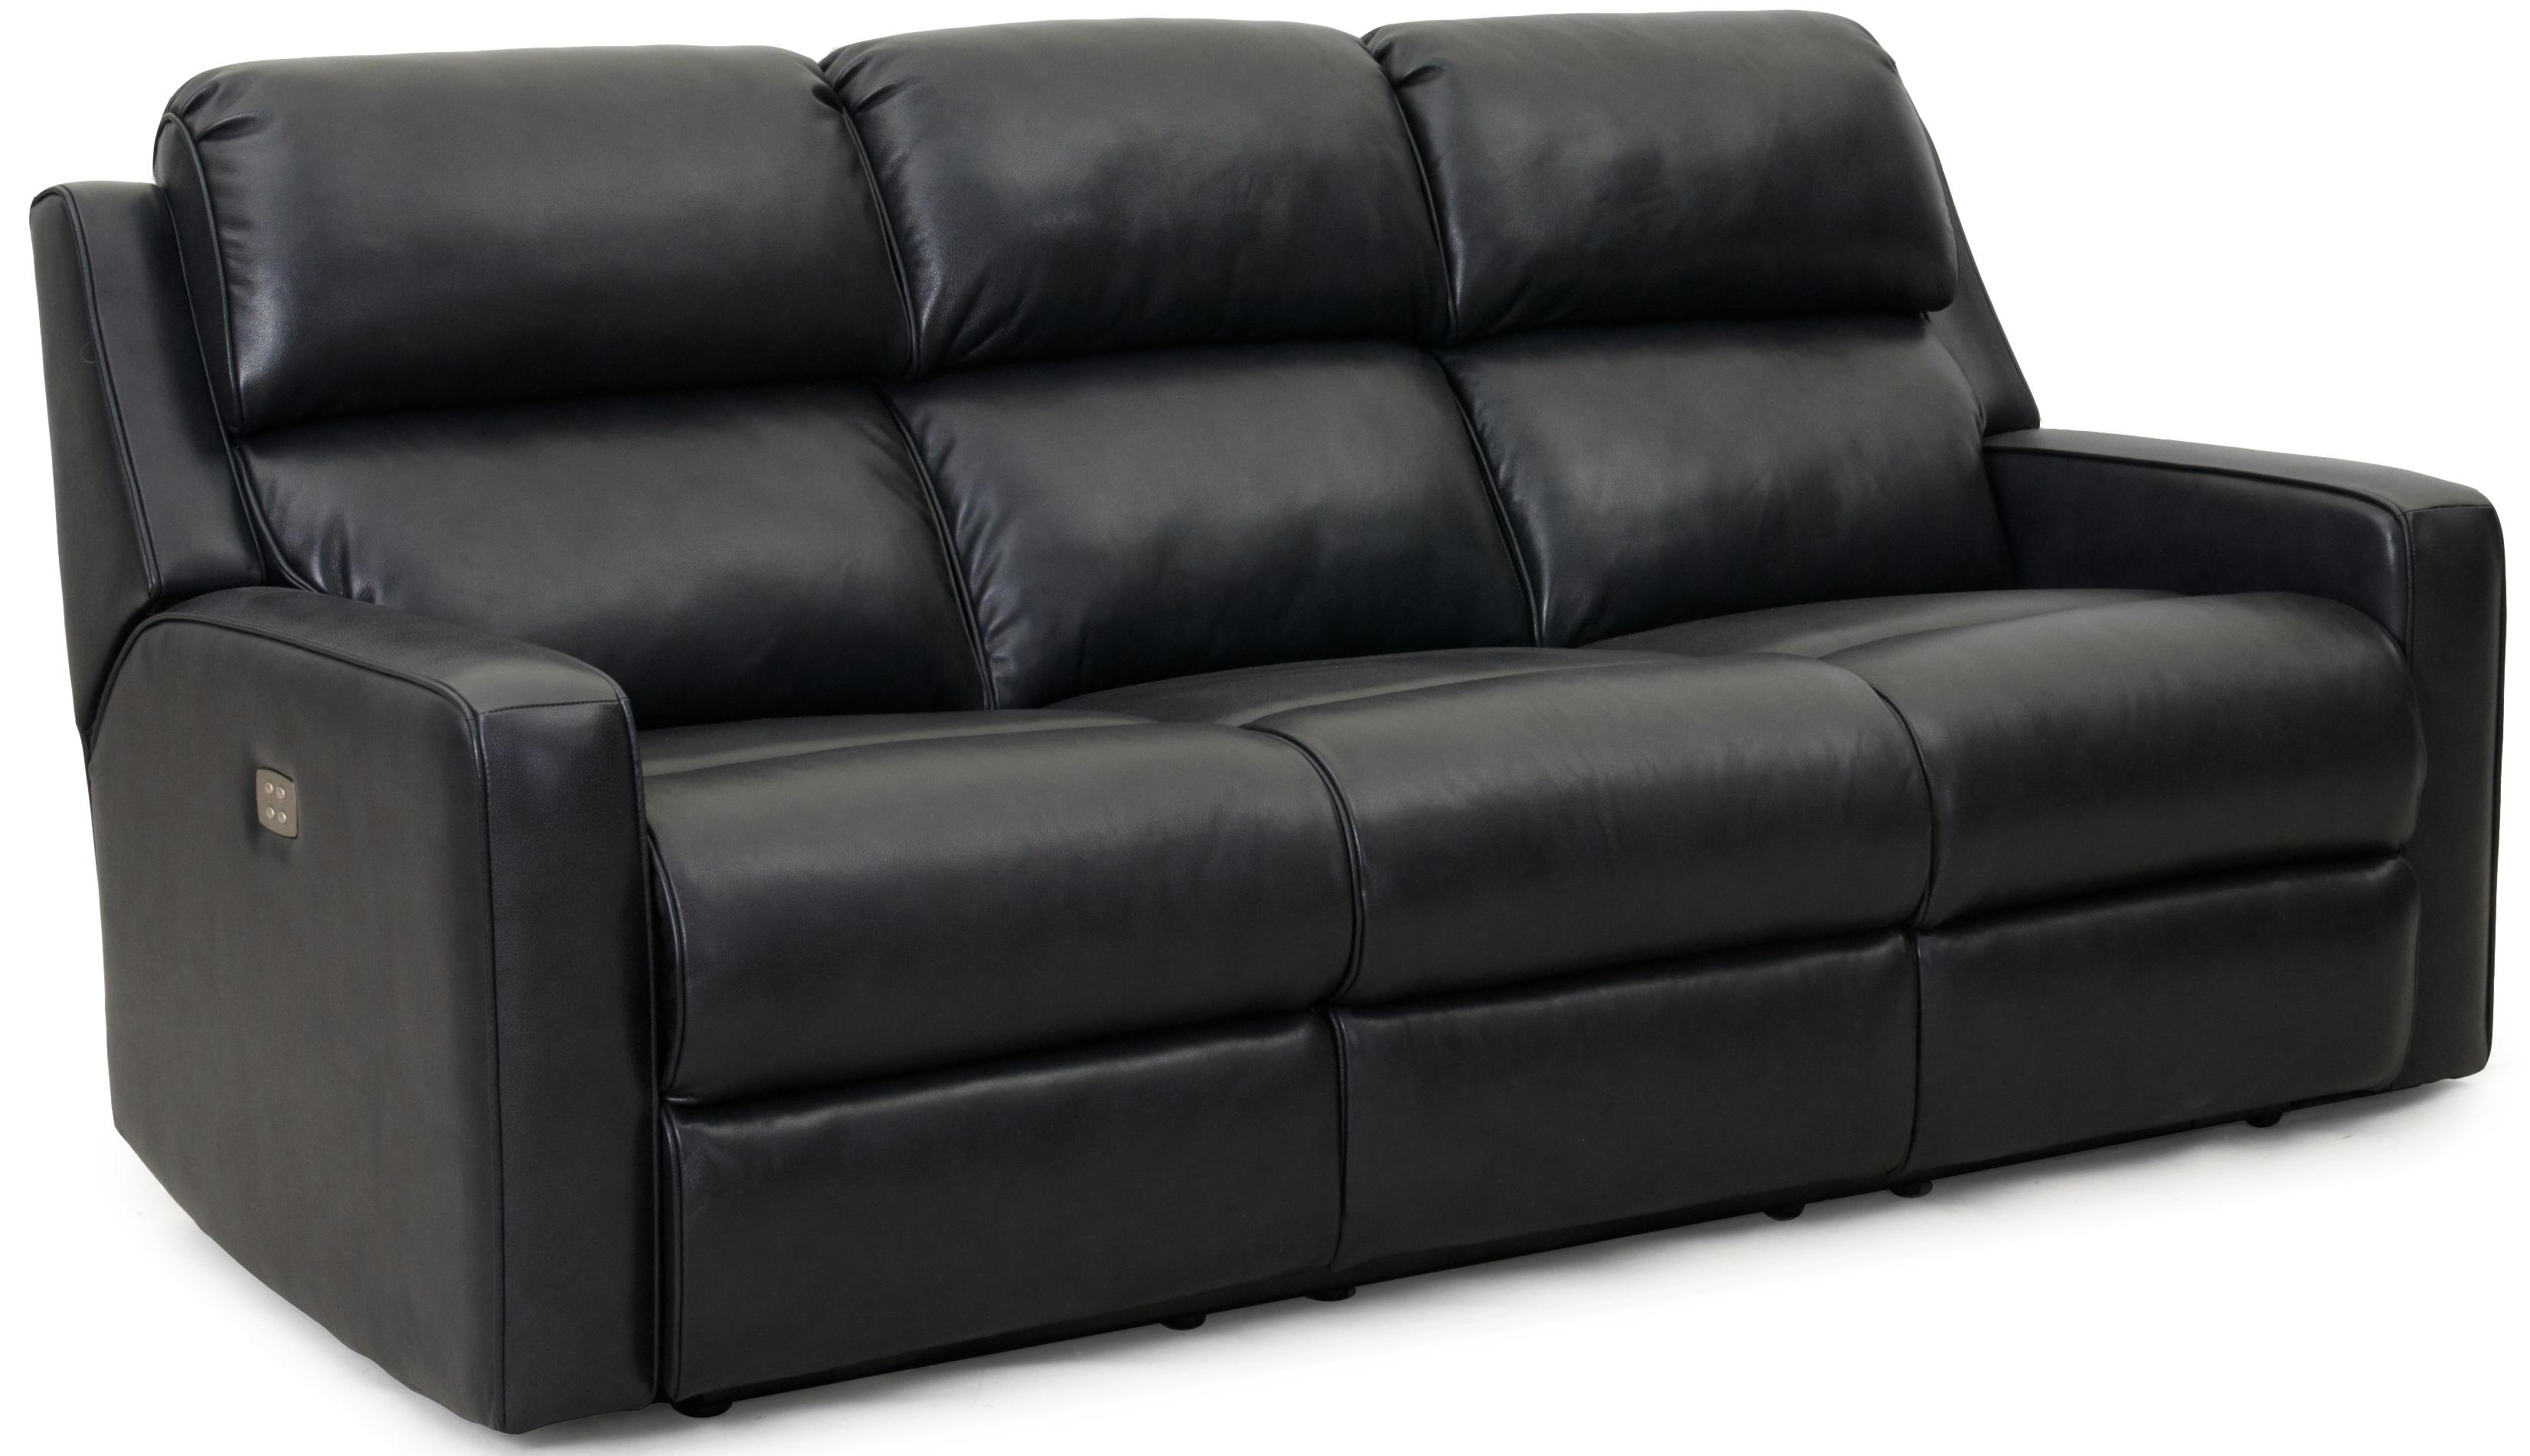 LDI 1275 Power Reclining Sofa - Item Number: 1275-58PWR-Taylor Graphite